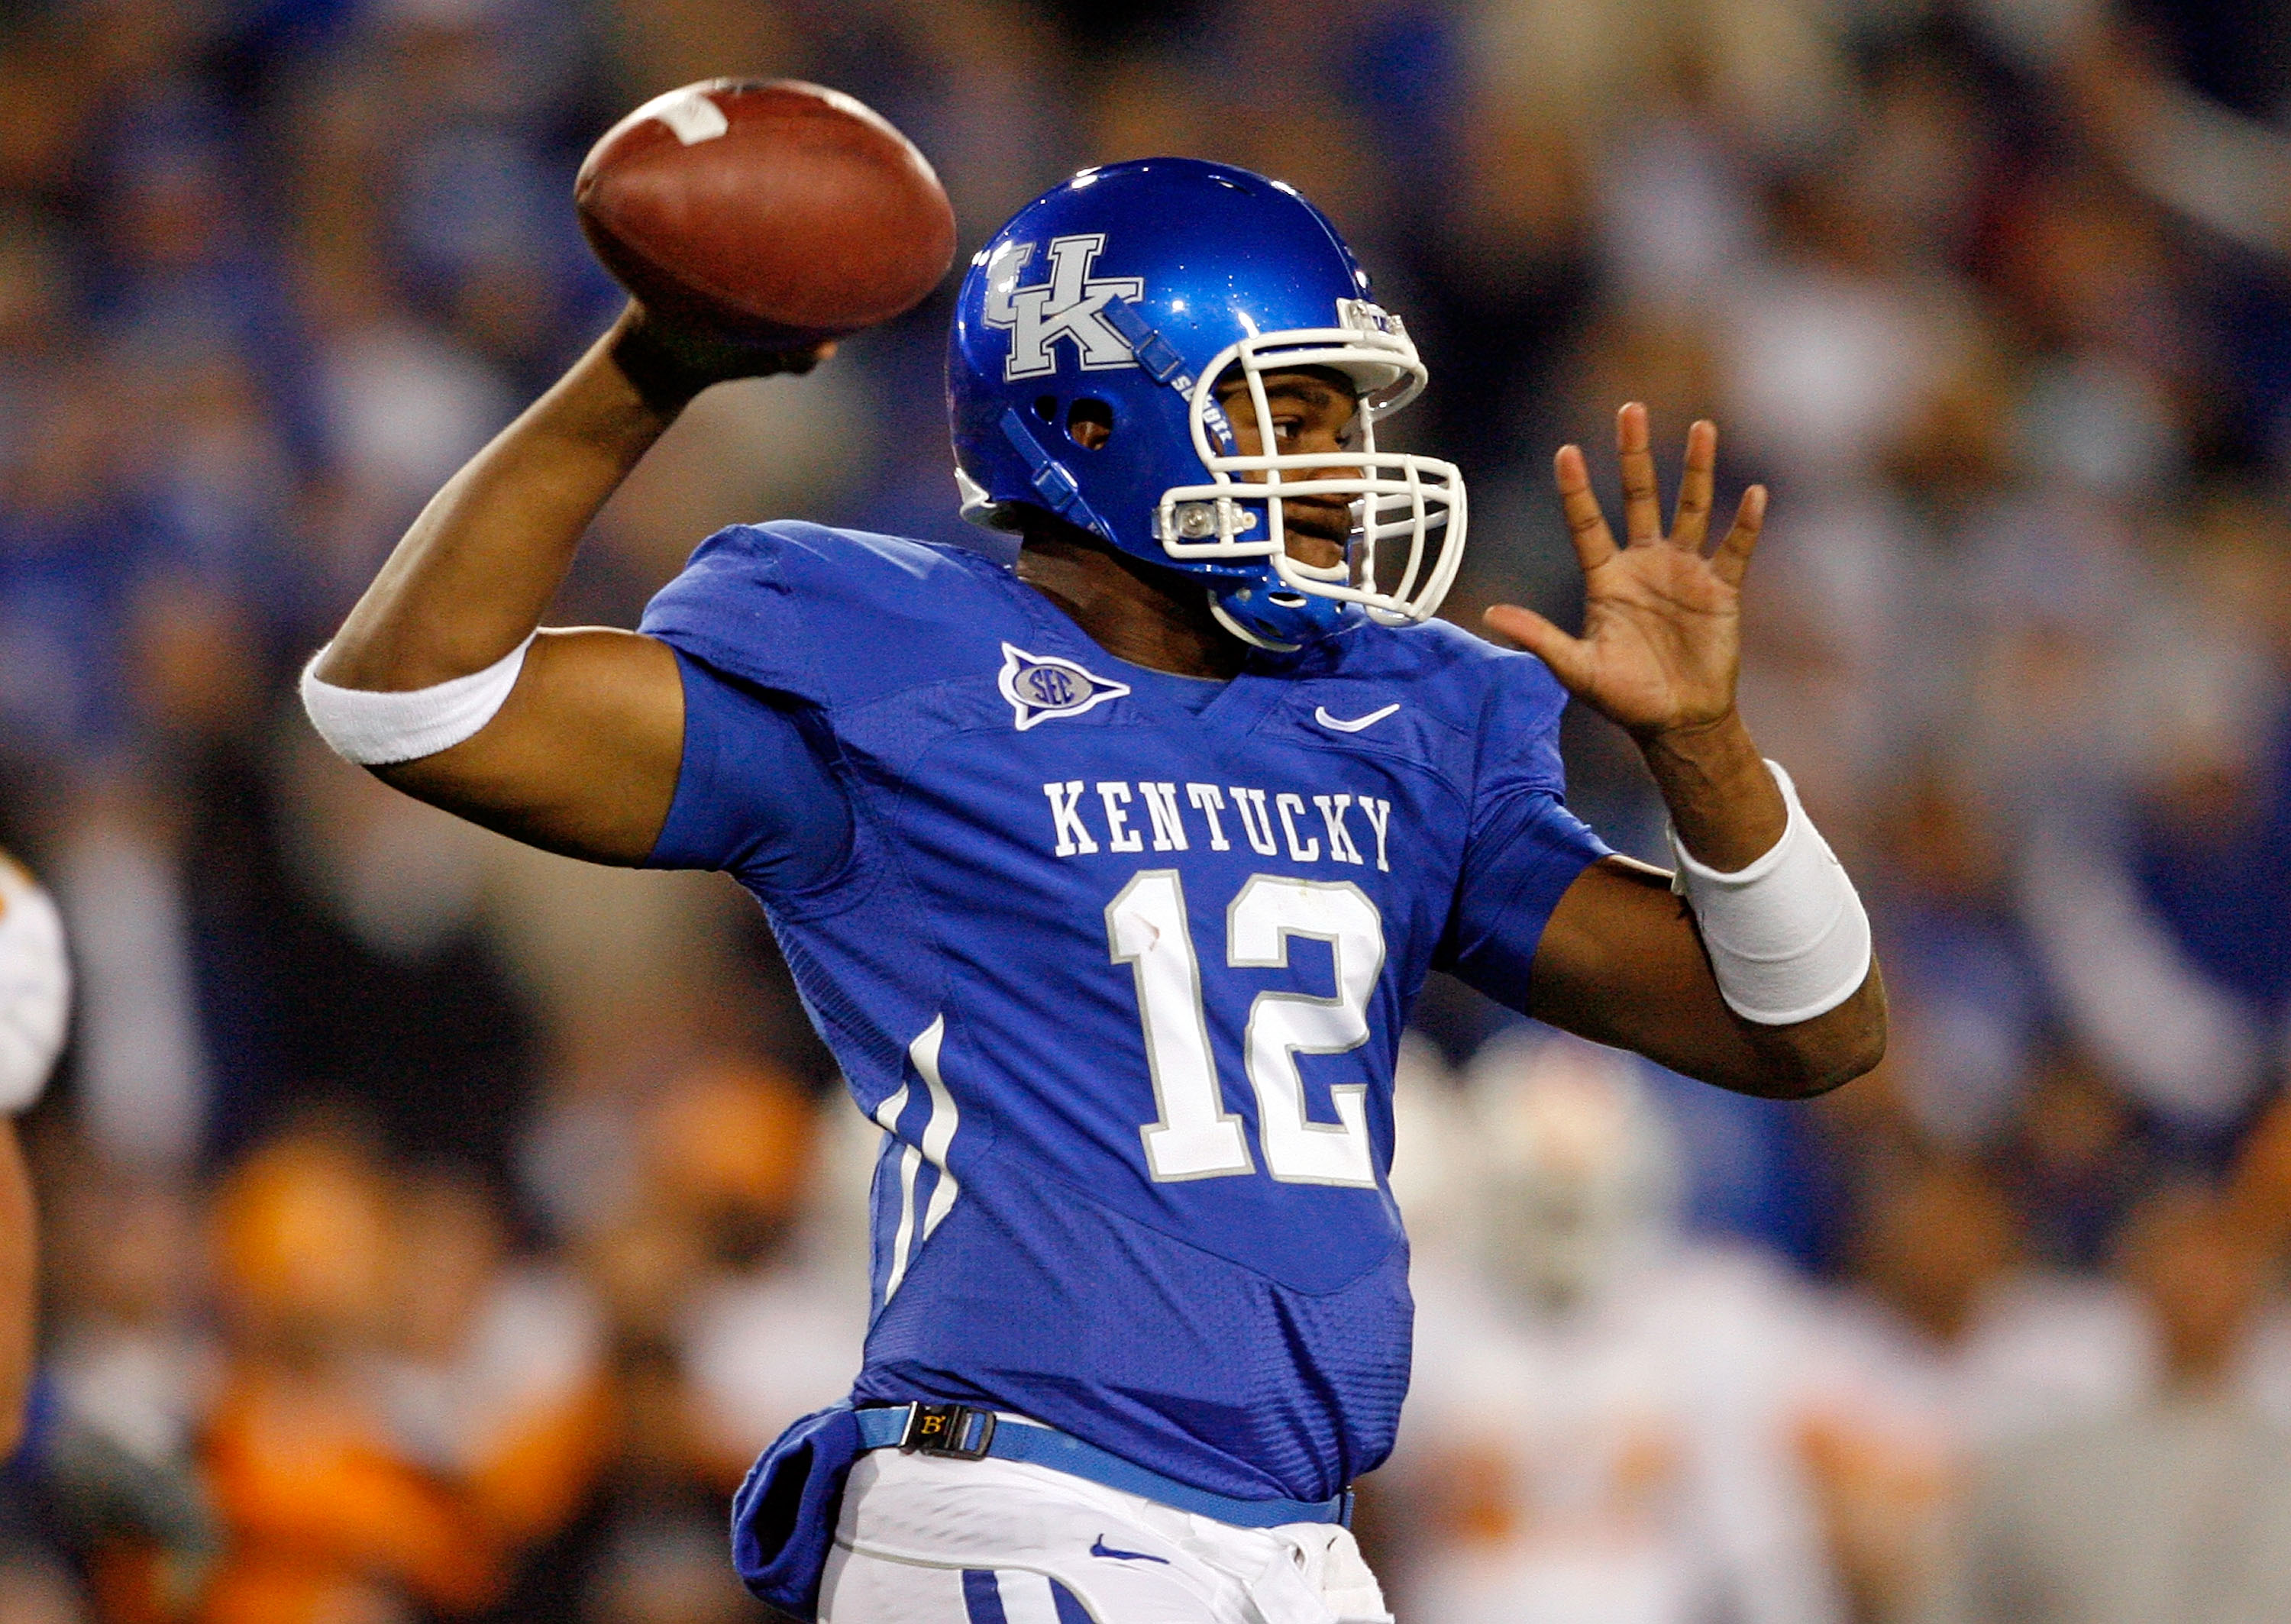 Filling in for the Wildcats in their bowl game last season, Newton aims to be the starting quarterback in 2011.